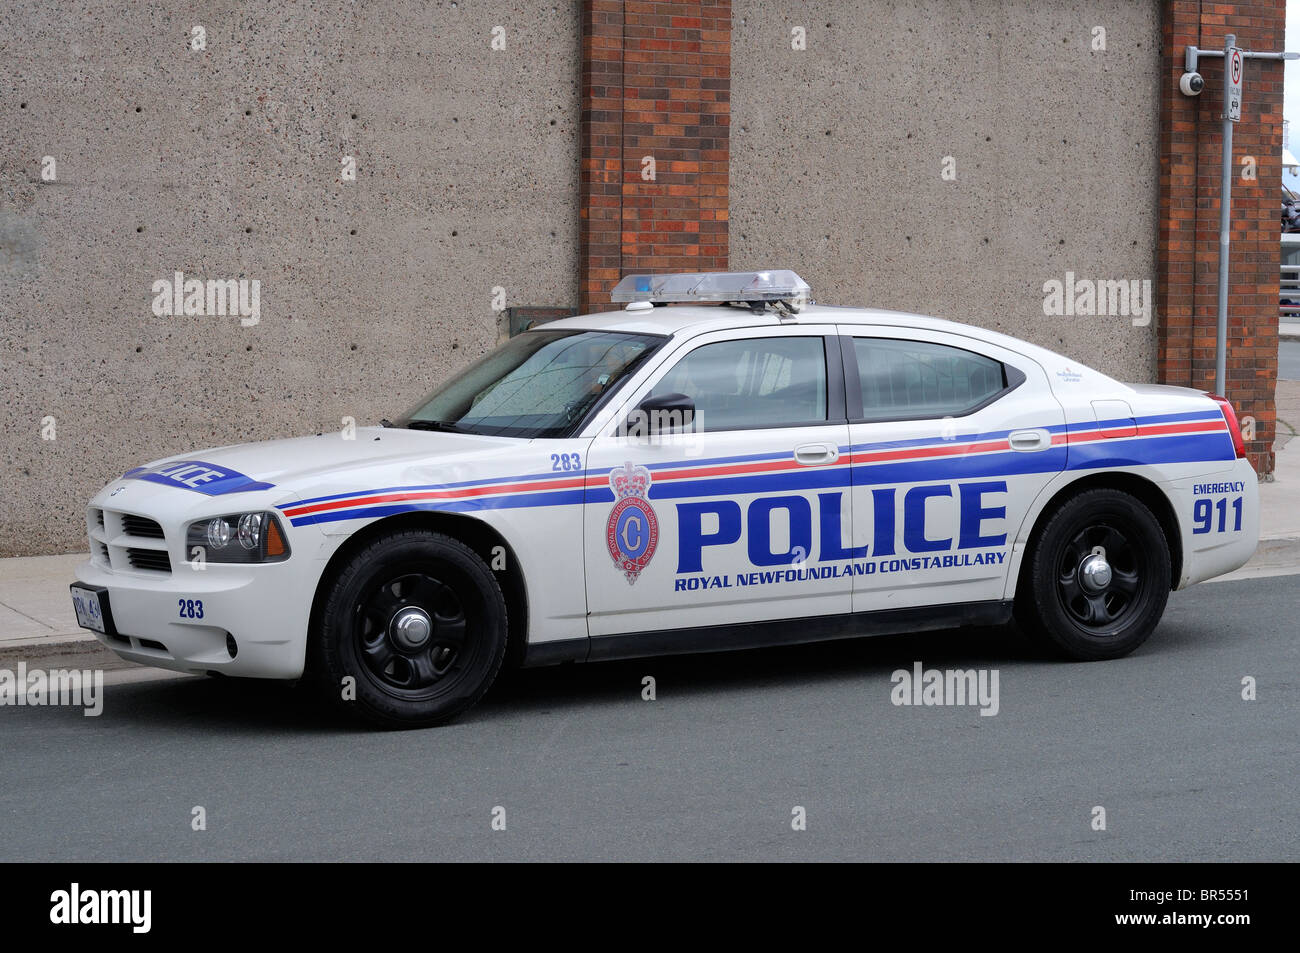 dodge charger police car in the newfoundland police force canada stock photo royalty free image. Black Bedroom Furniture Sets. Home Design Ideas